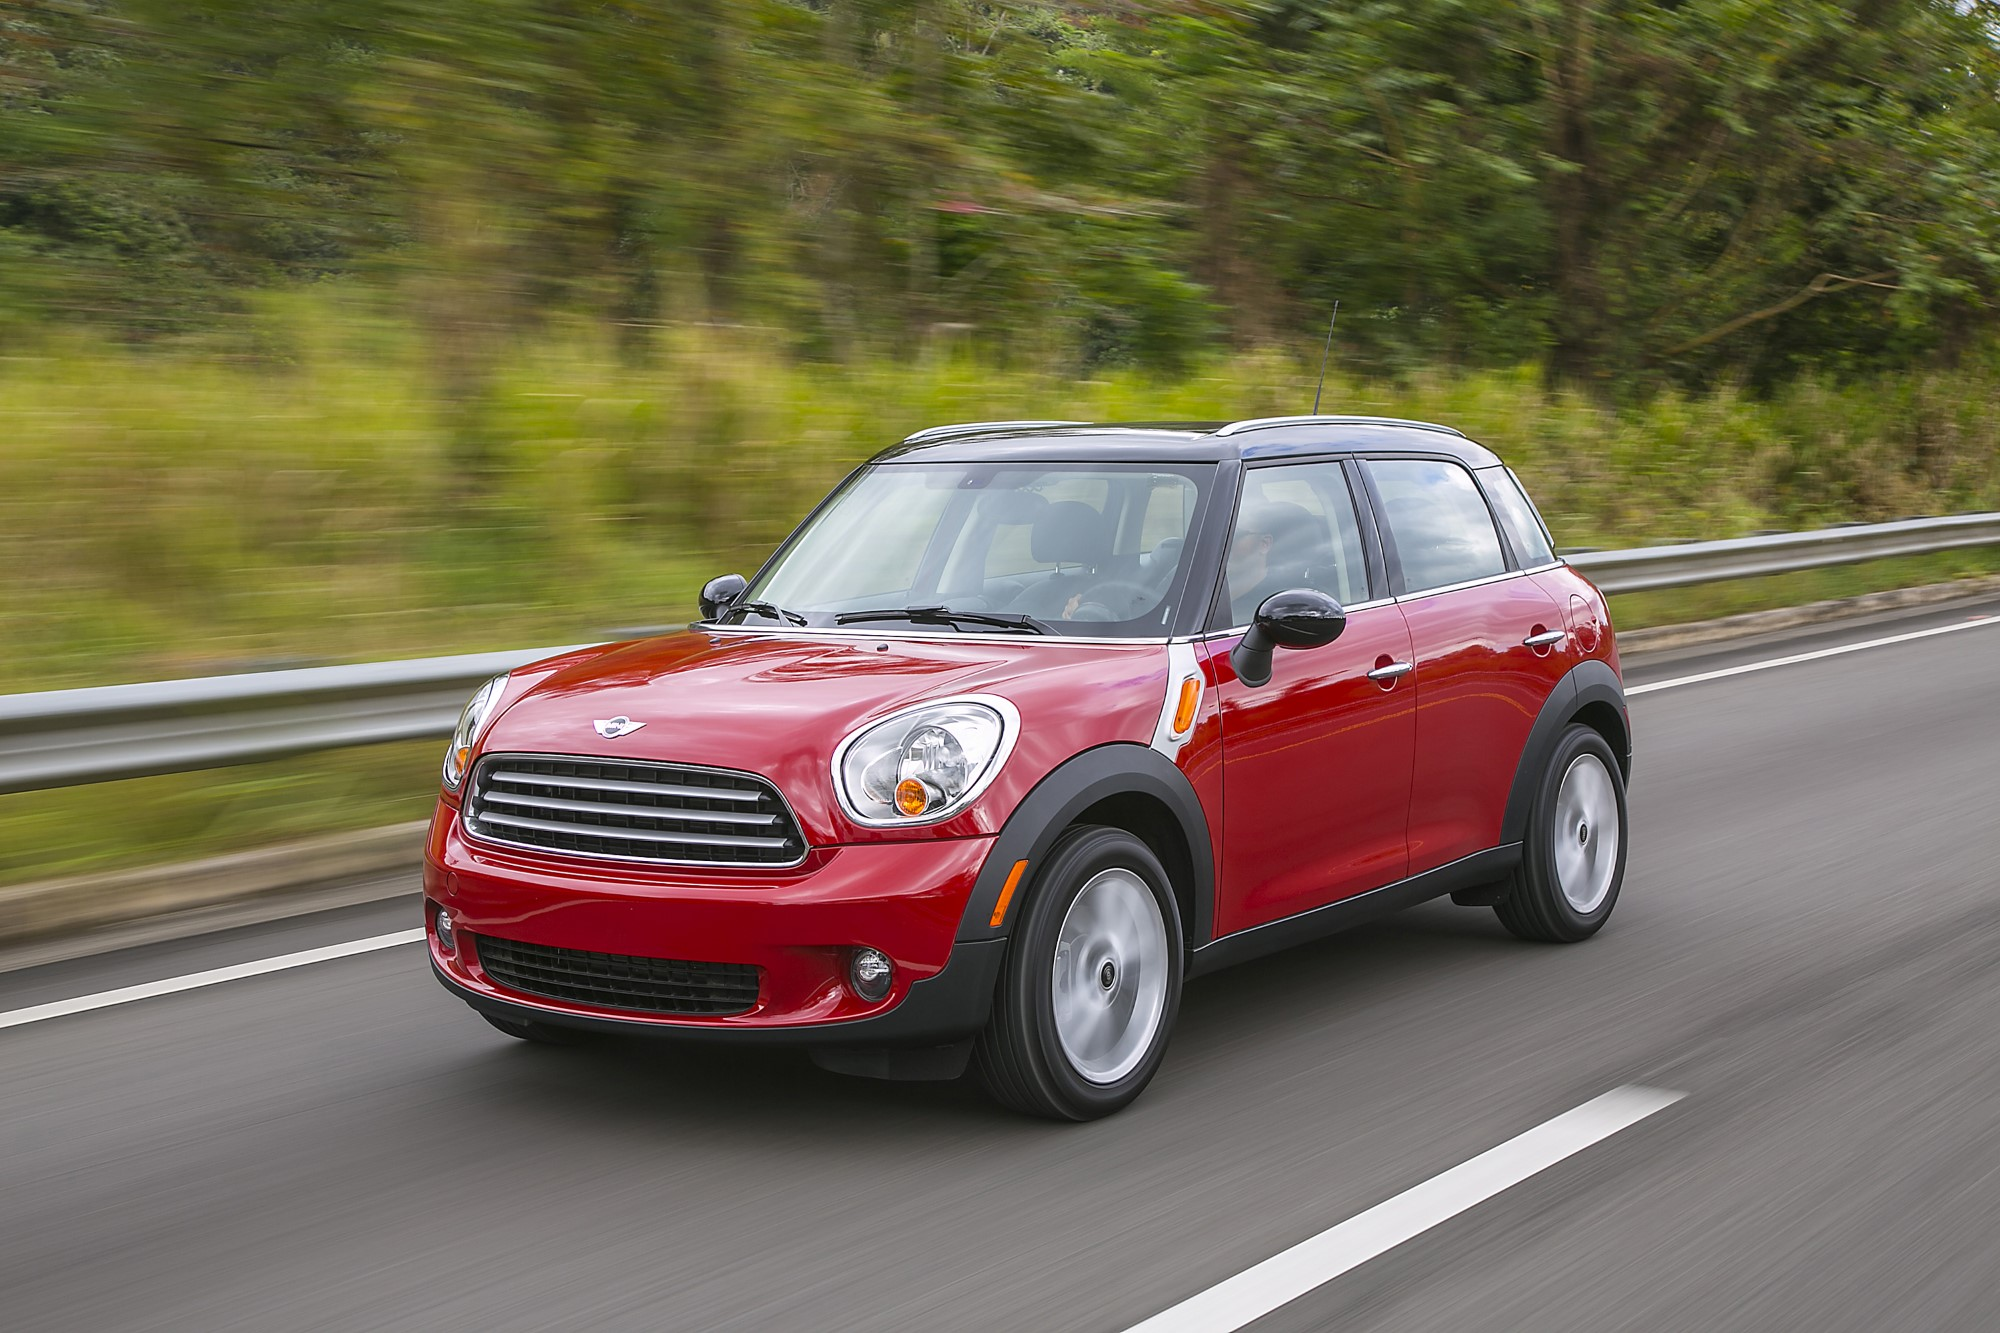 mini production at magna steyr ending in 2016, moving to u.k.